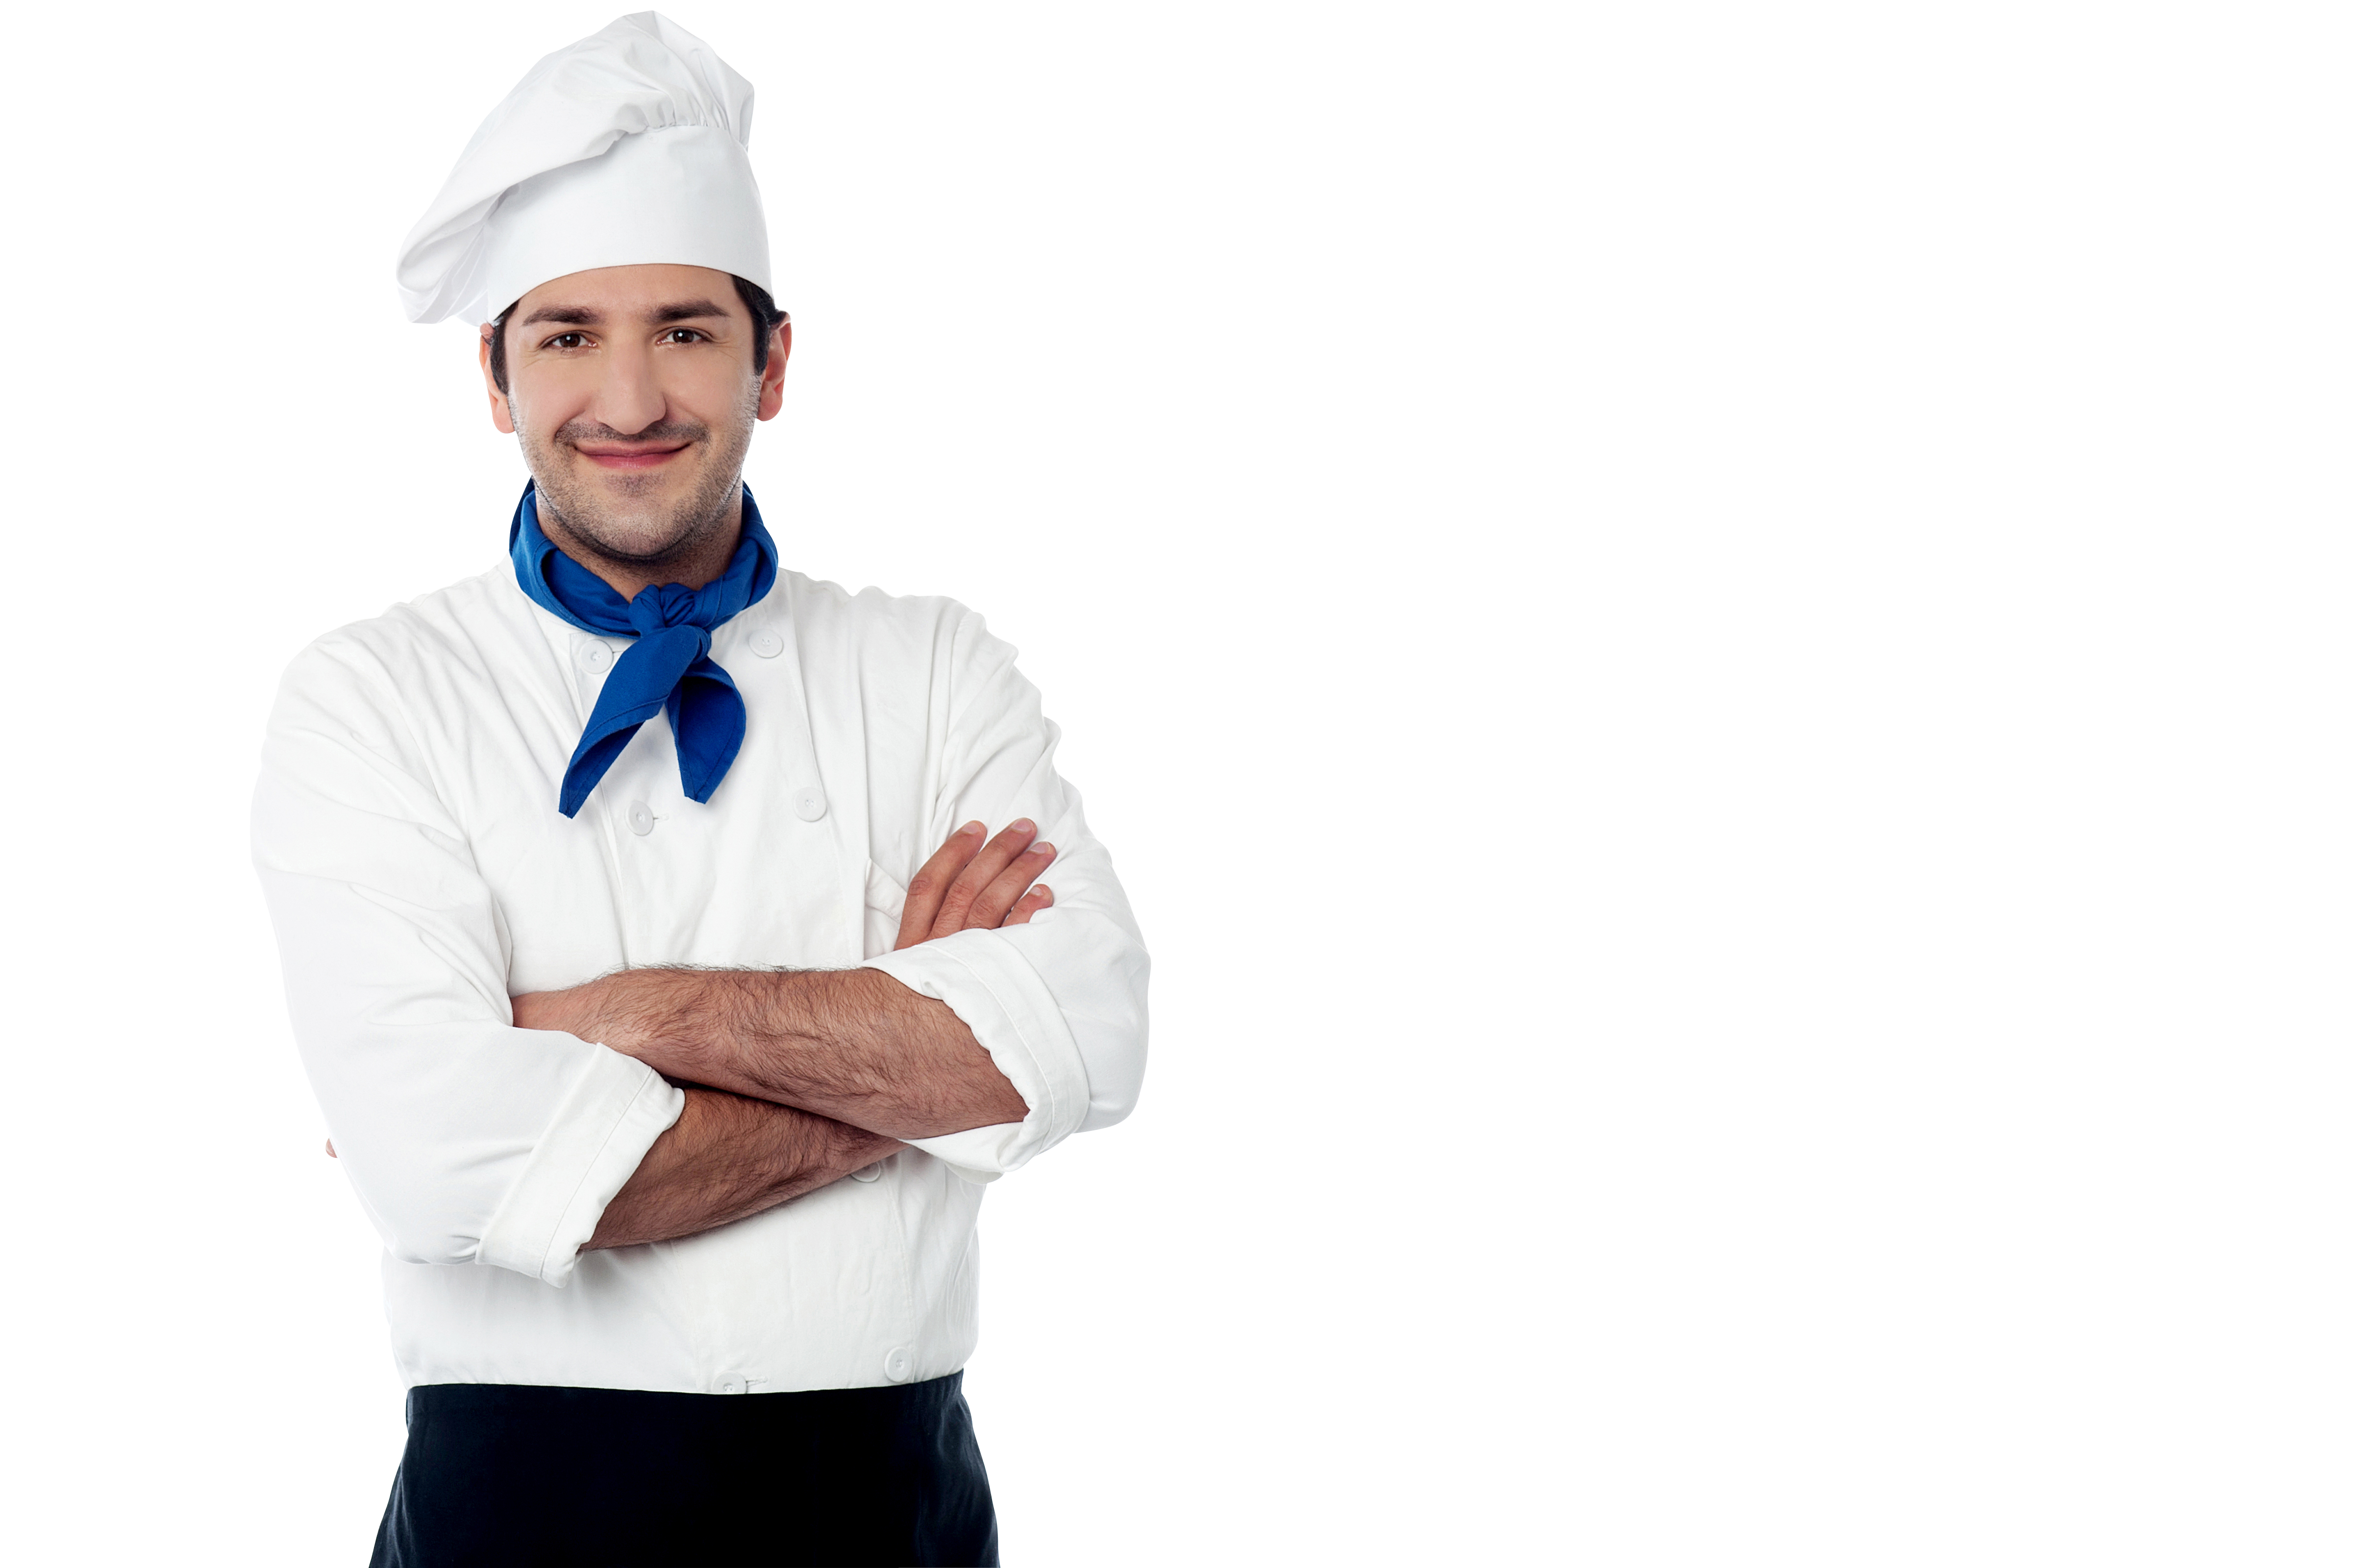 Male Chef PNG Image